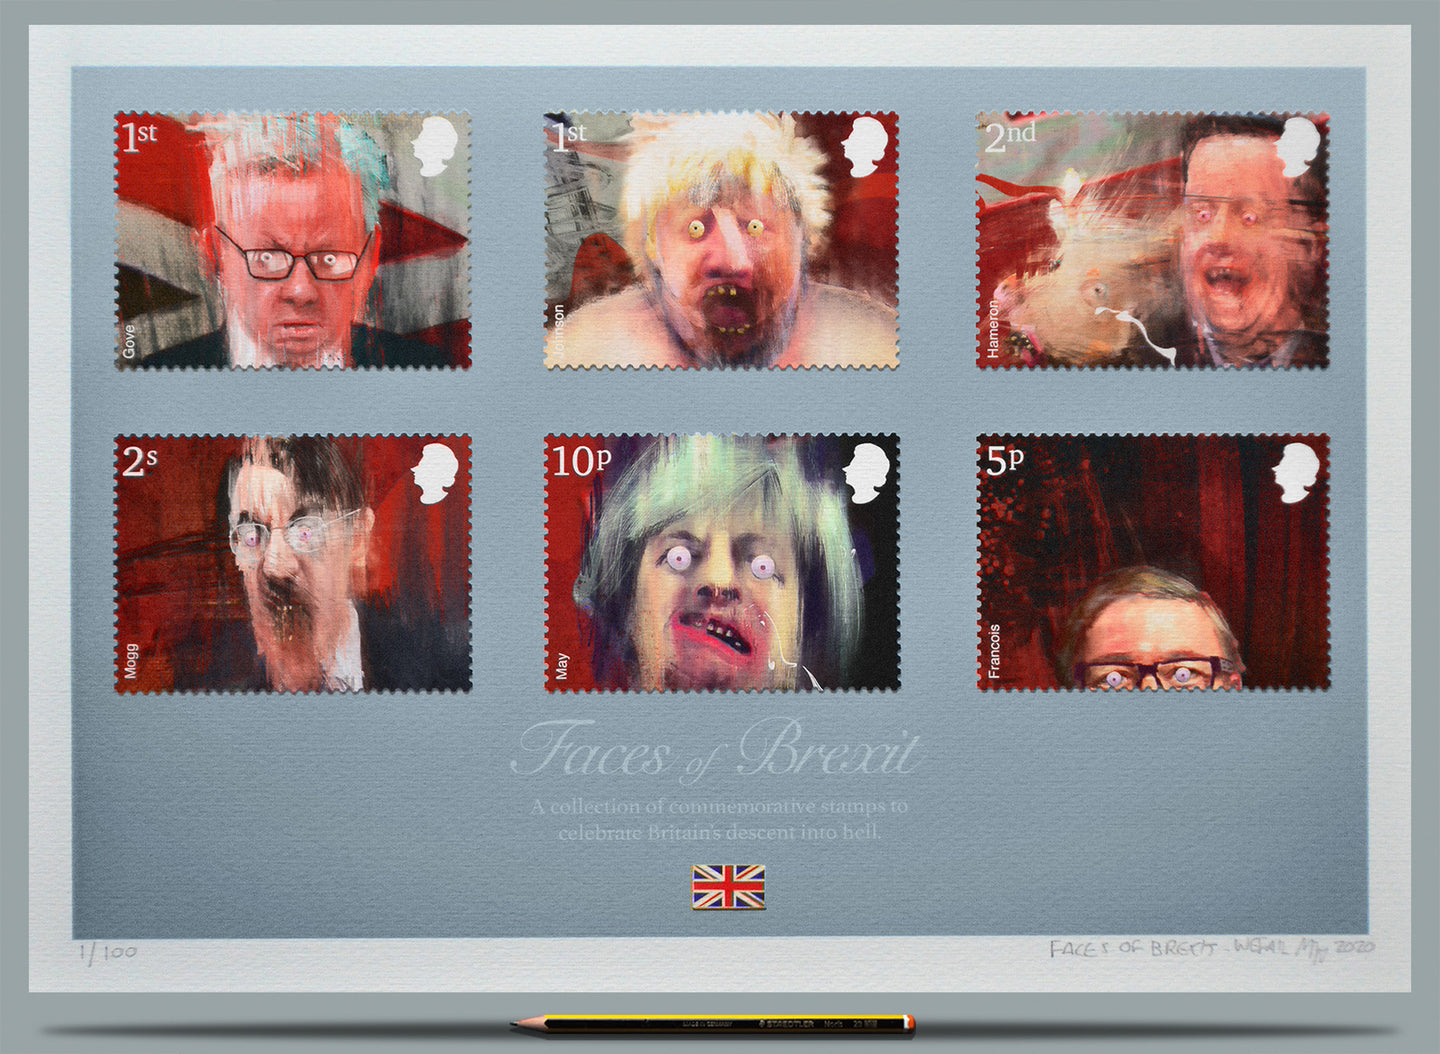 Faces of Brexit  - Ltd Edition A2